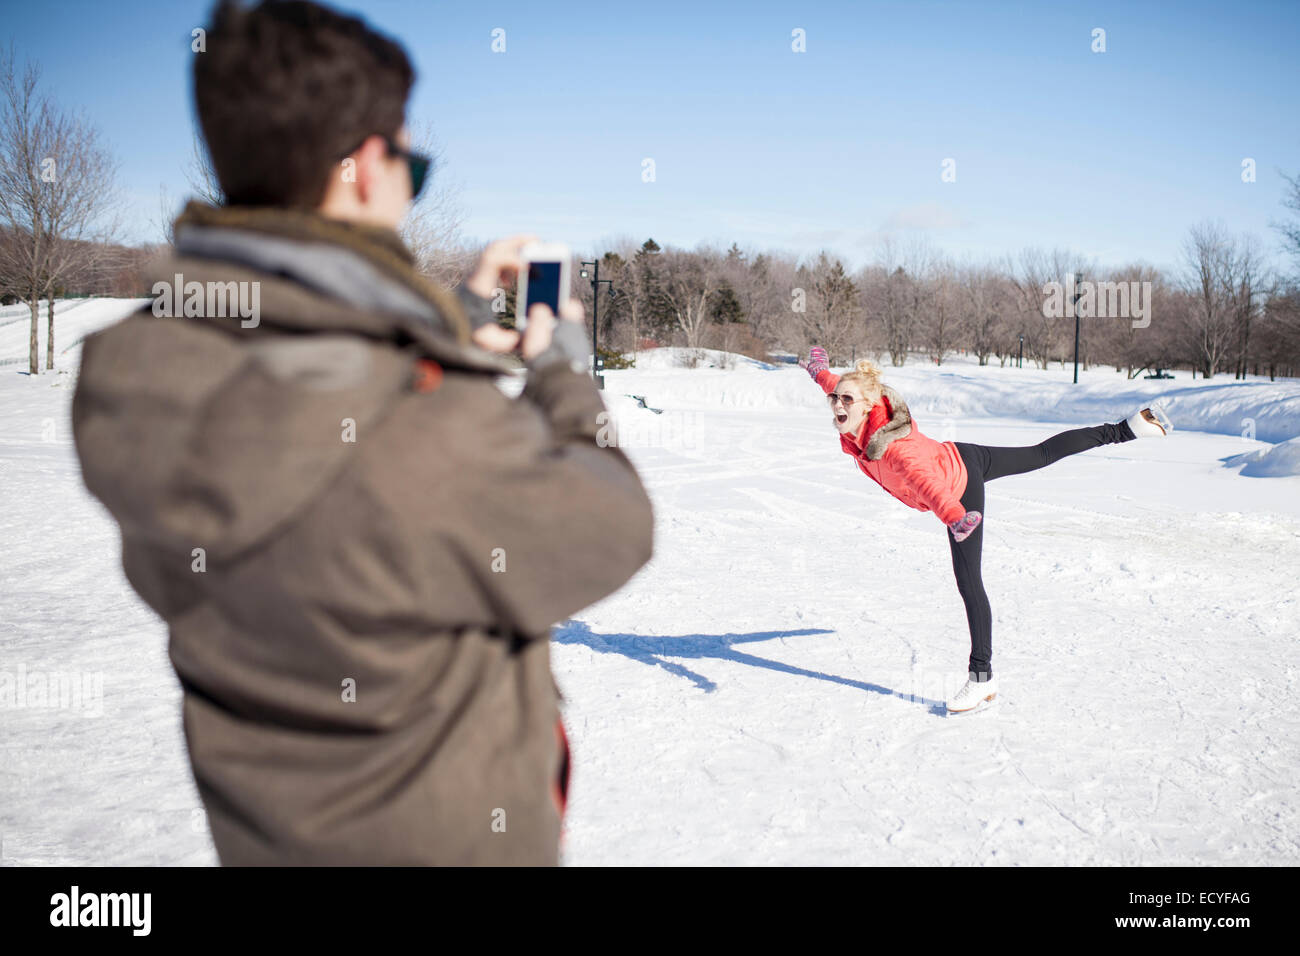 Caucasian man taking picture of girlfriend ice skating on frozen lake - Stock Image